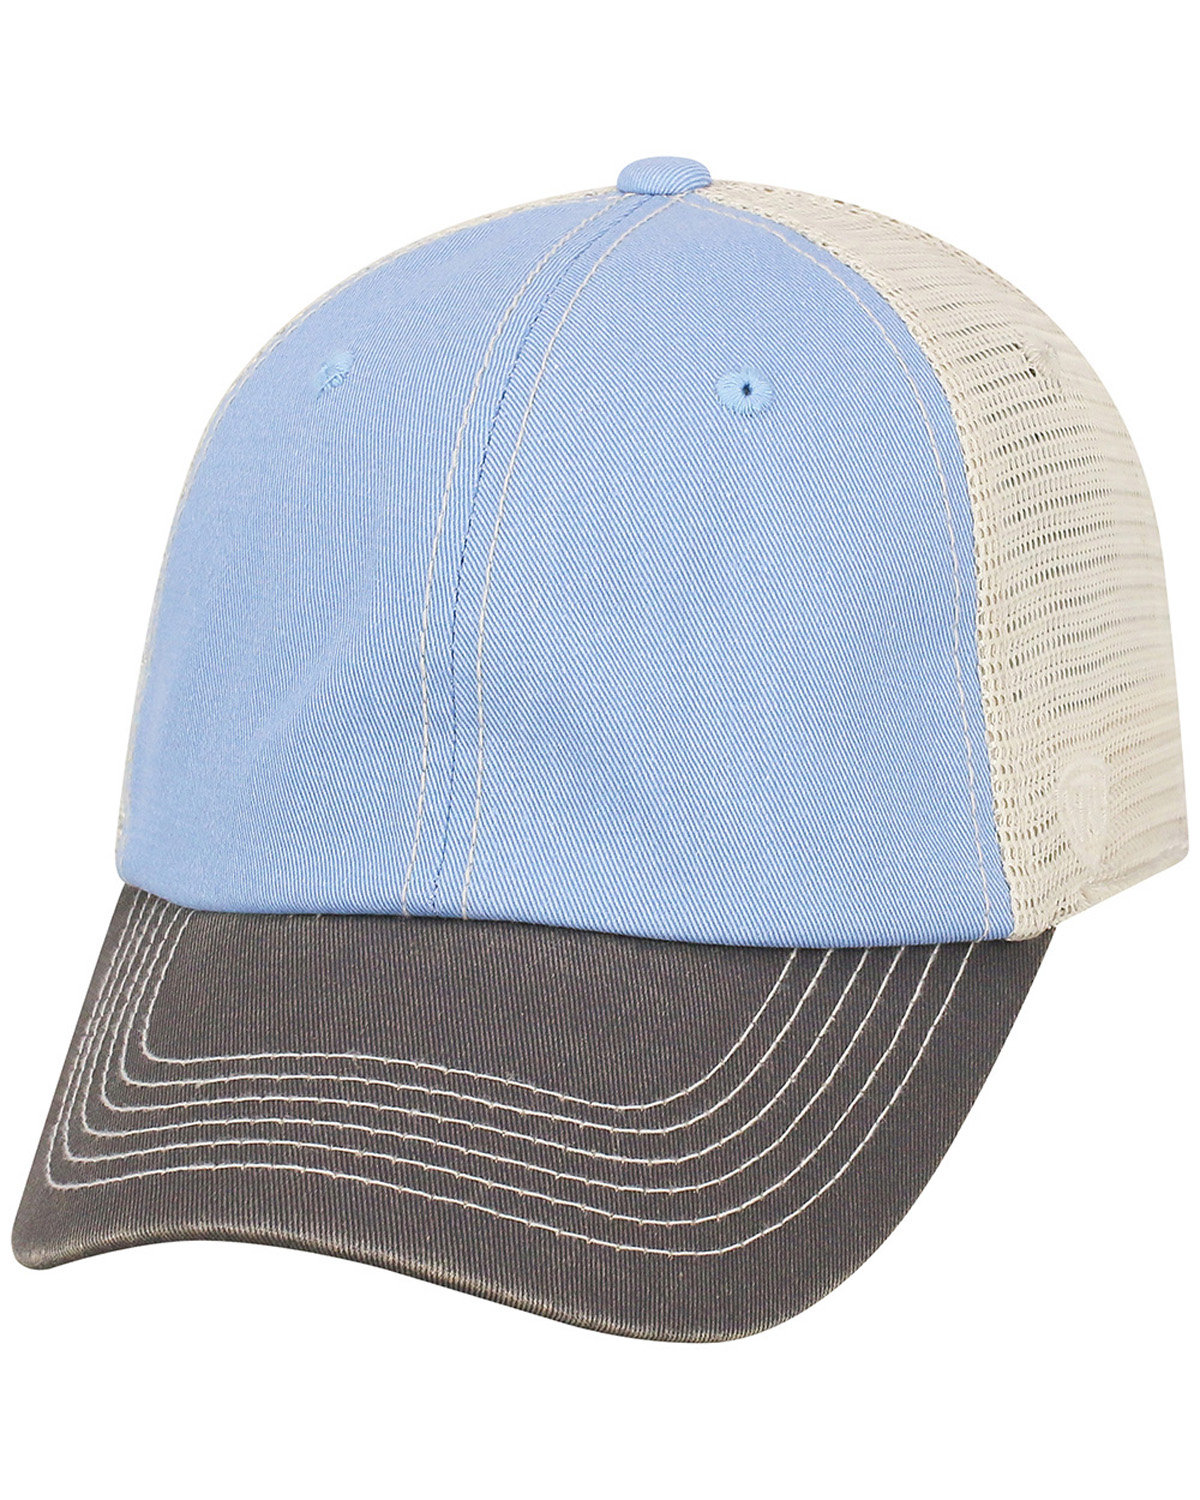 Top Of The World Adult Offroad Cap LIGHT BLUE